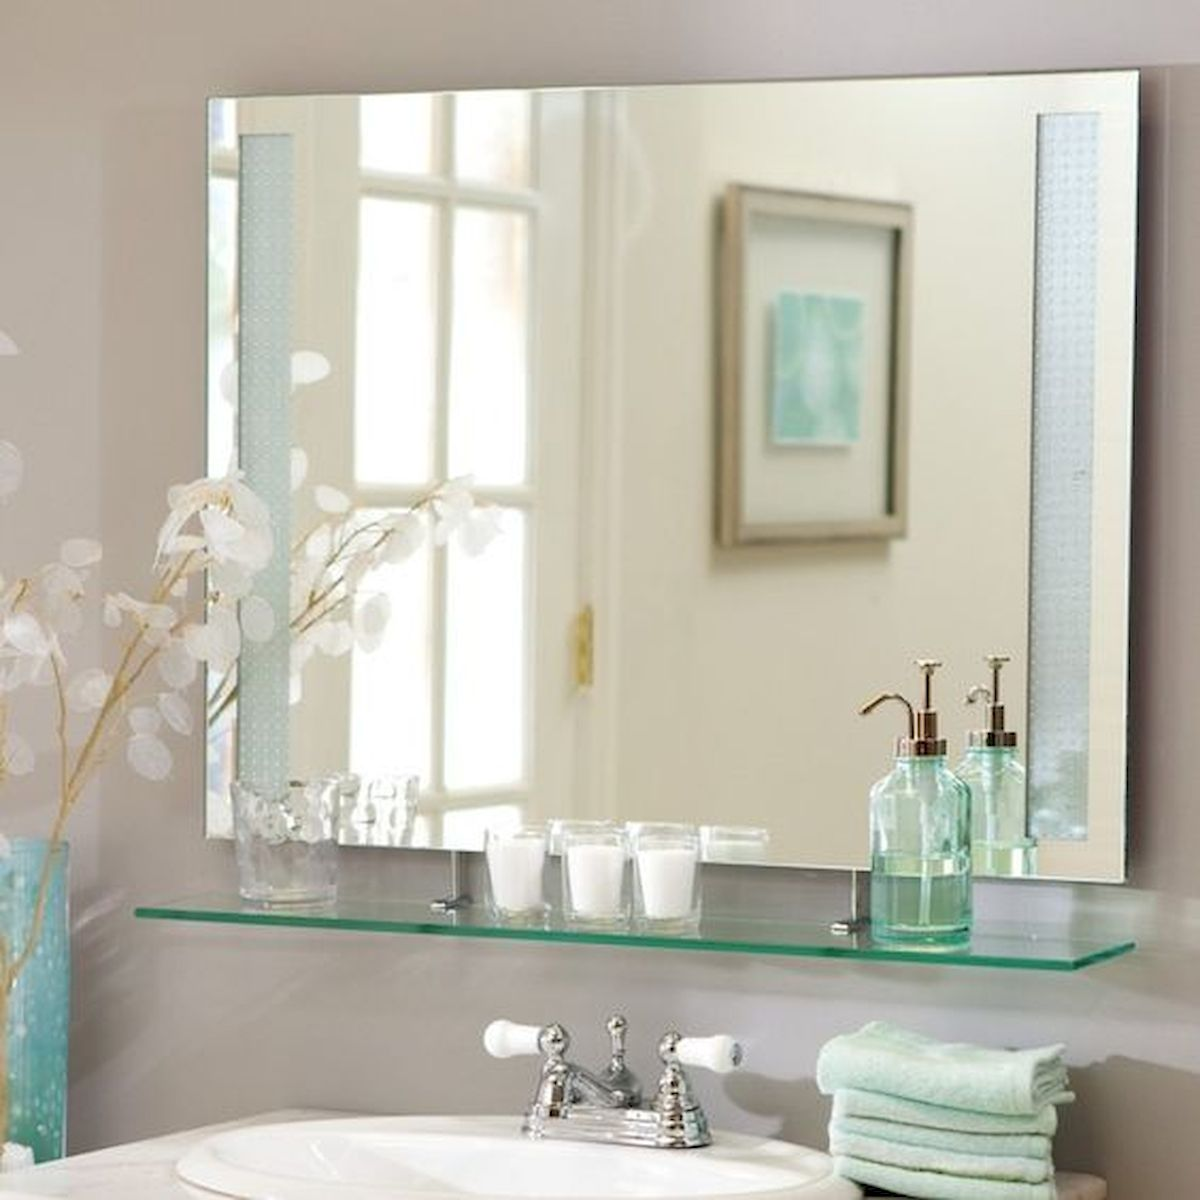 26 Easy and Creative DIY Mirror Ideas To Decorate Your Bathroom (24)